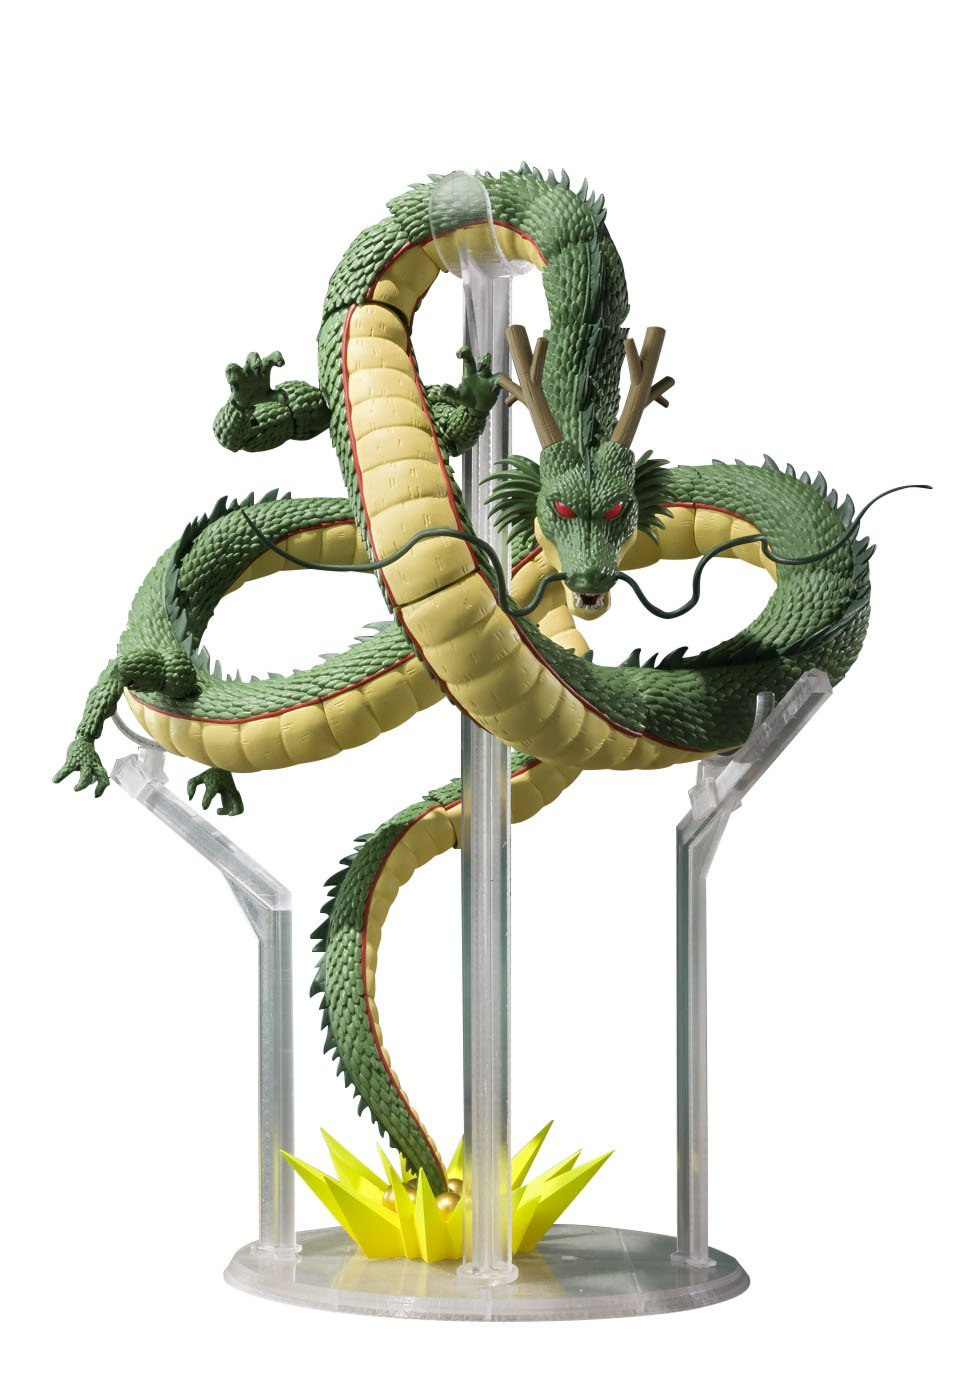 S.H. Figuarts Shenron Dragon Ball Super